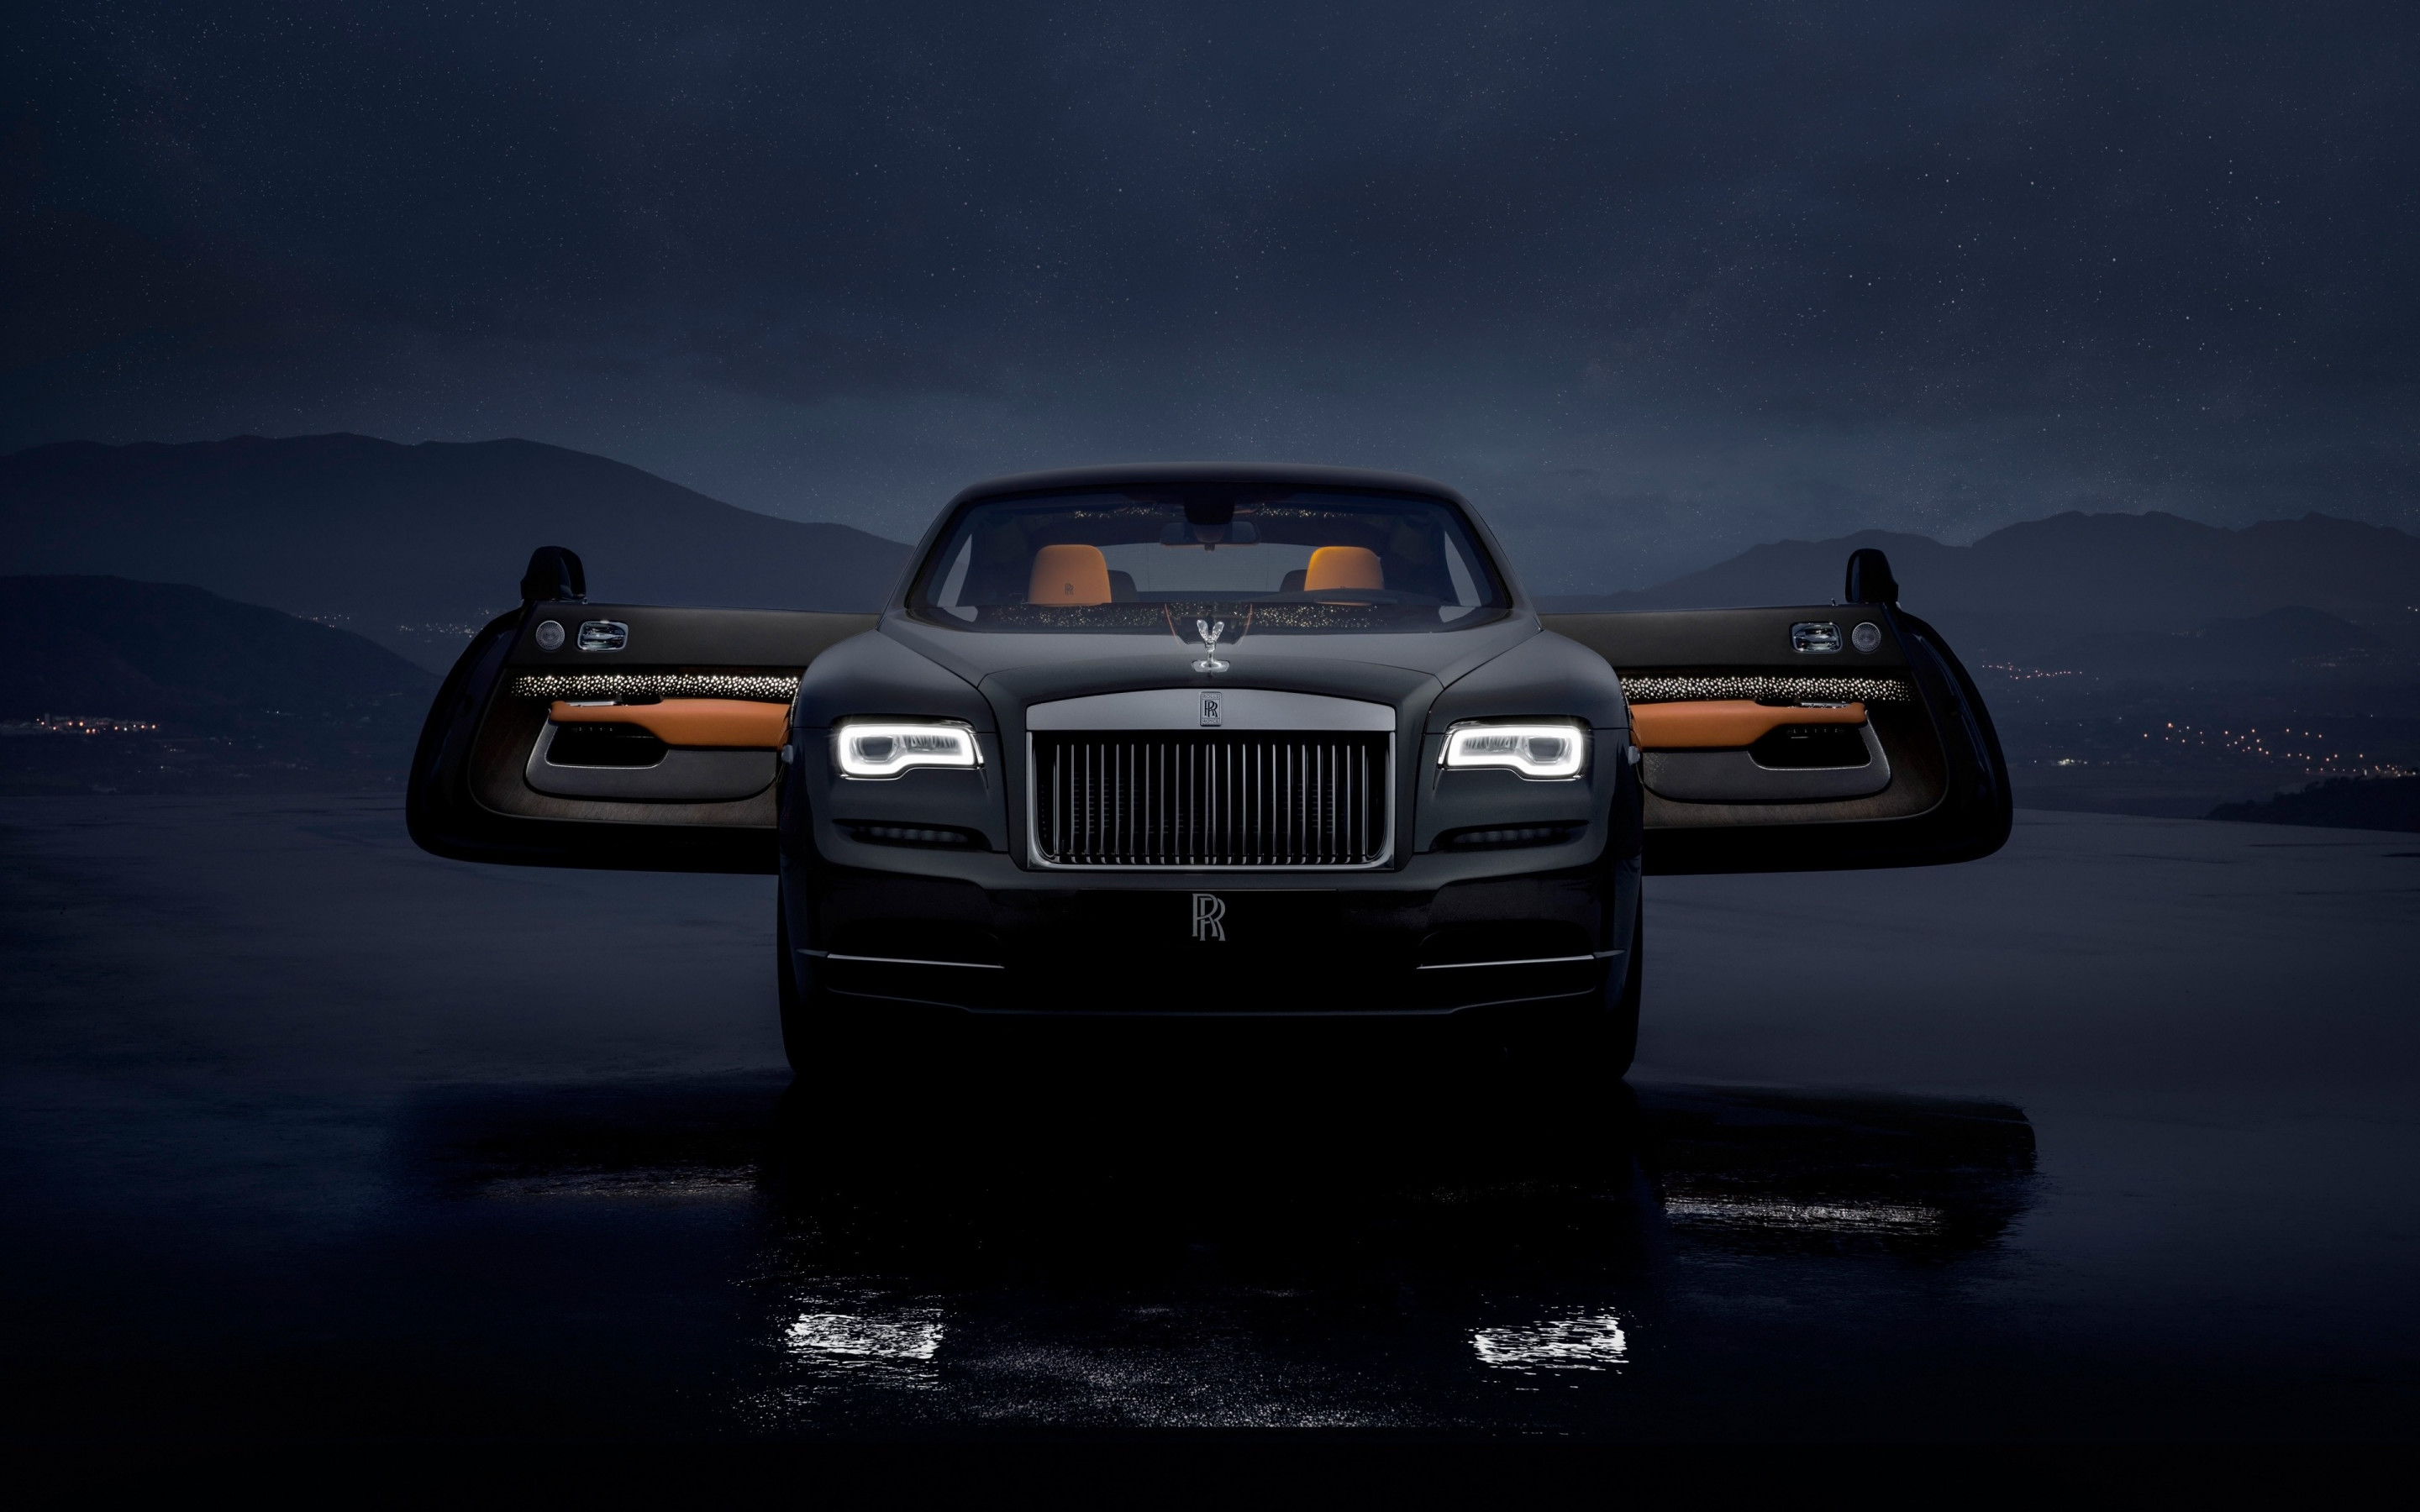 Rolls Royce Wraith Luminary Collection wallpaper 2880x1800